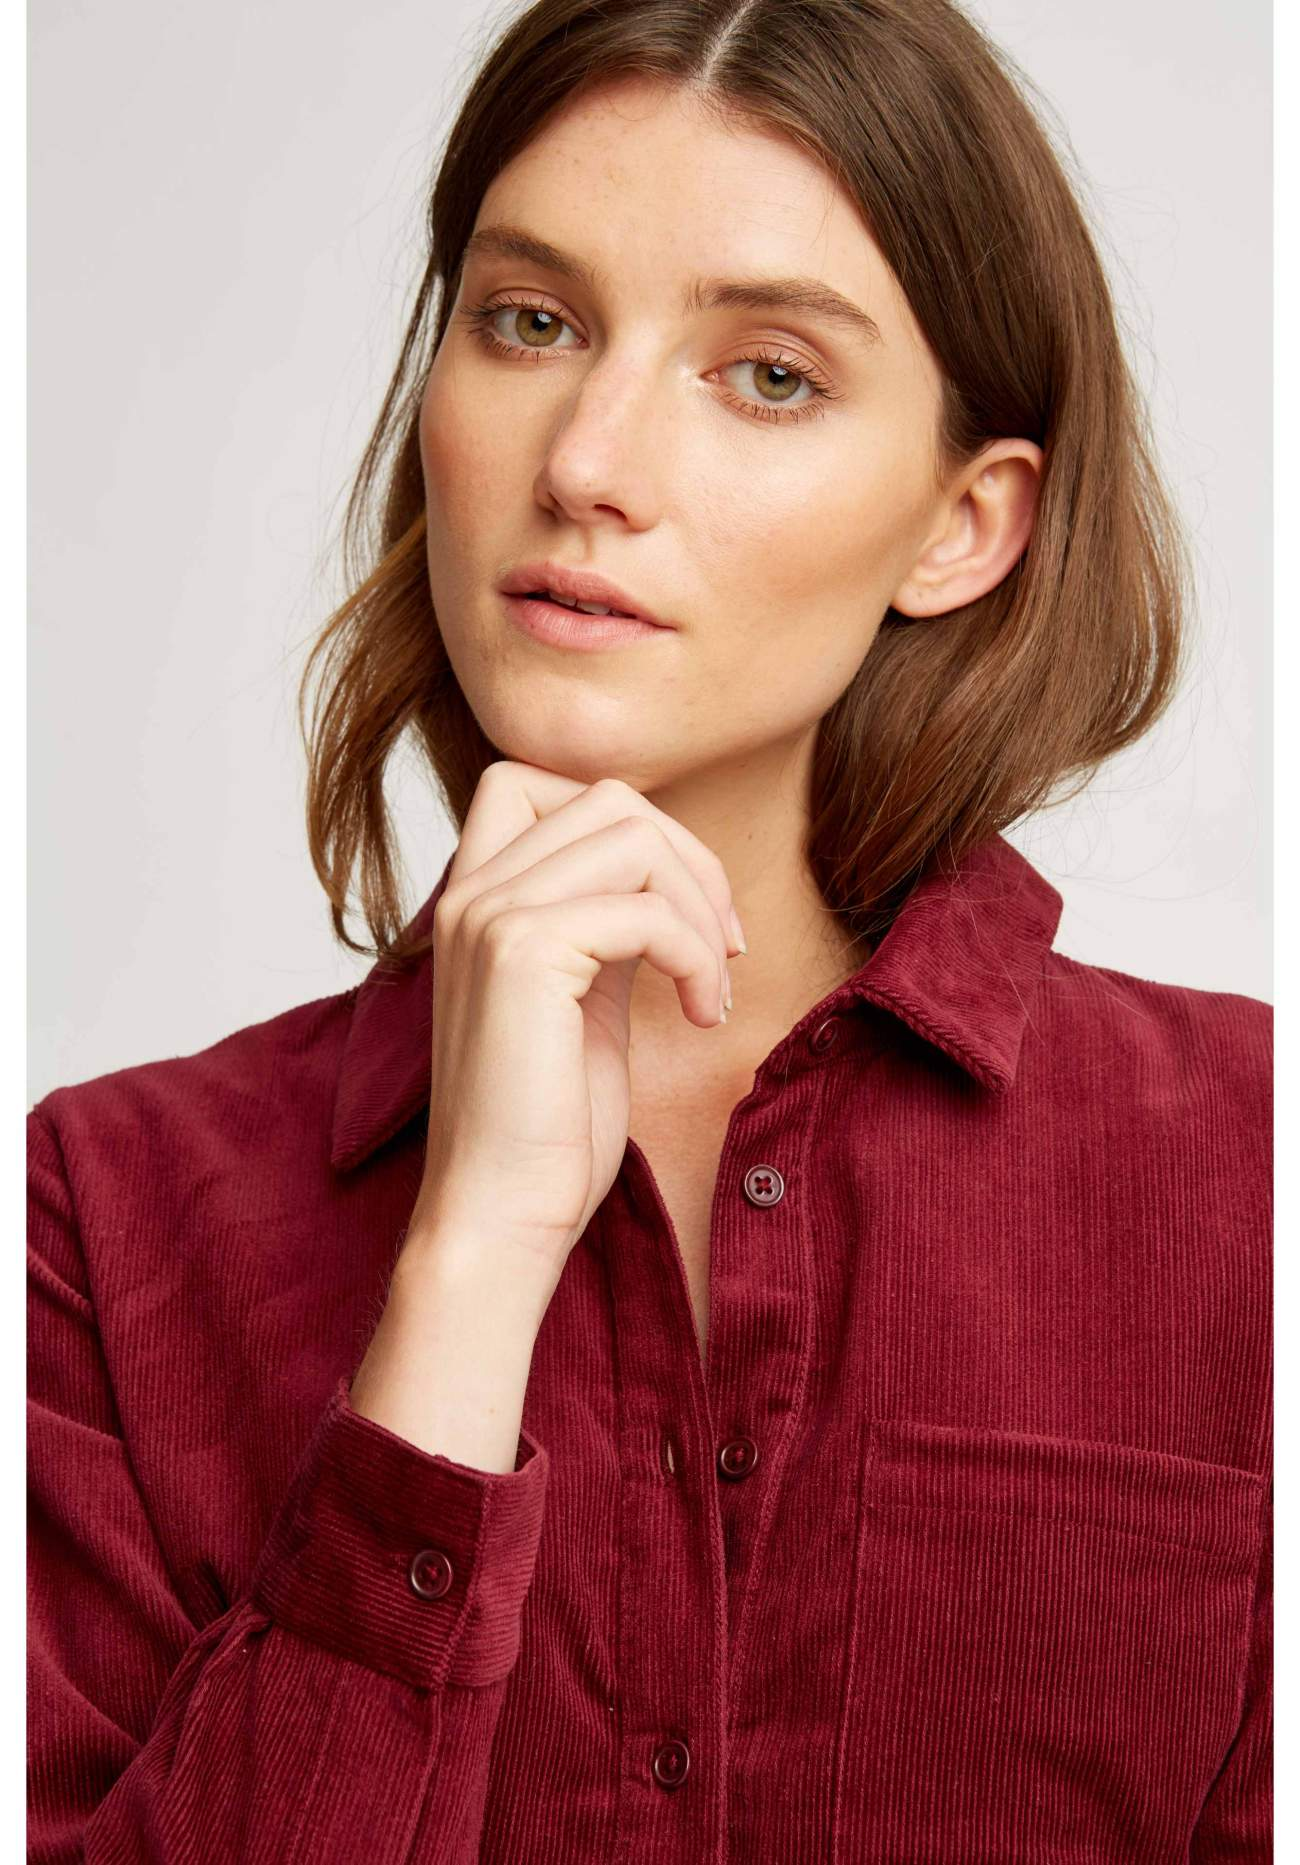 jaden-corduroy-shirt-dress-burgundy-5c4c8369810f